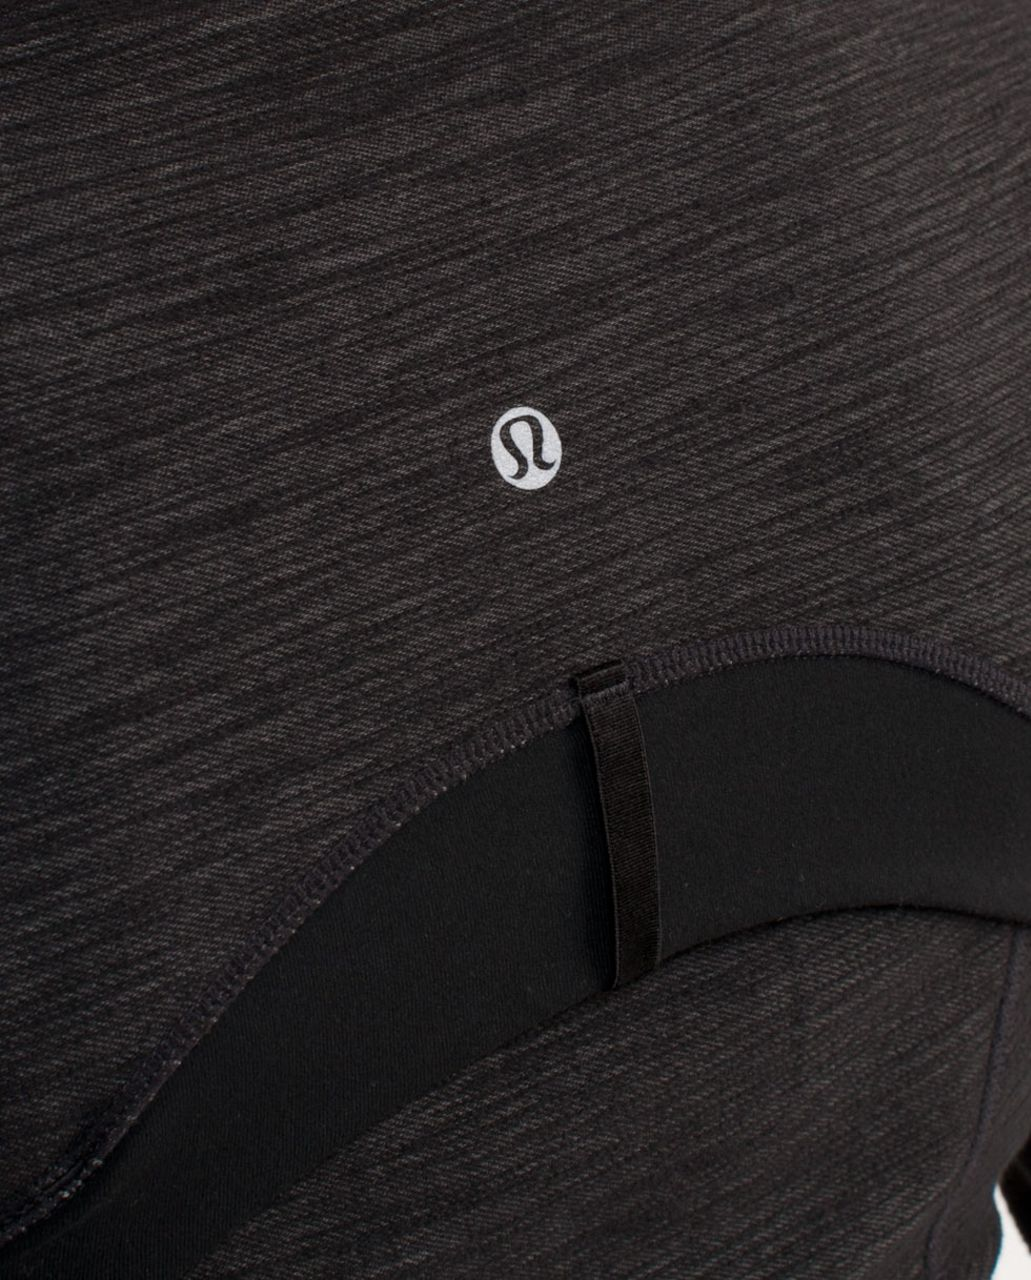 Lululemon Define Jacket - Black Slub Denim /  Black